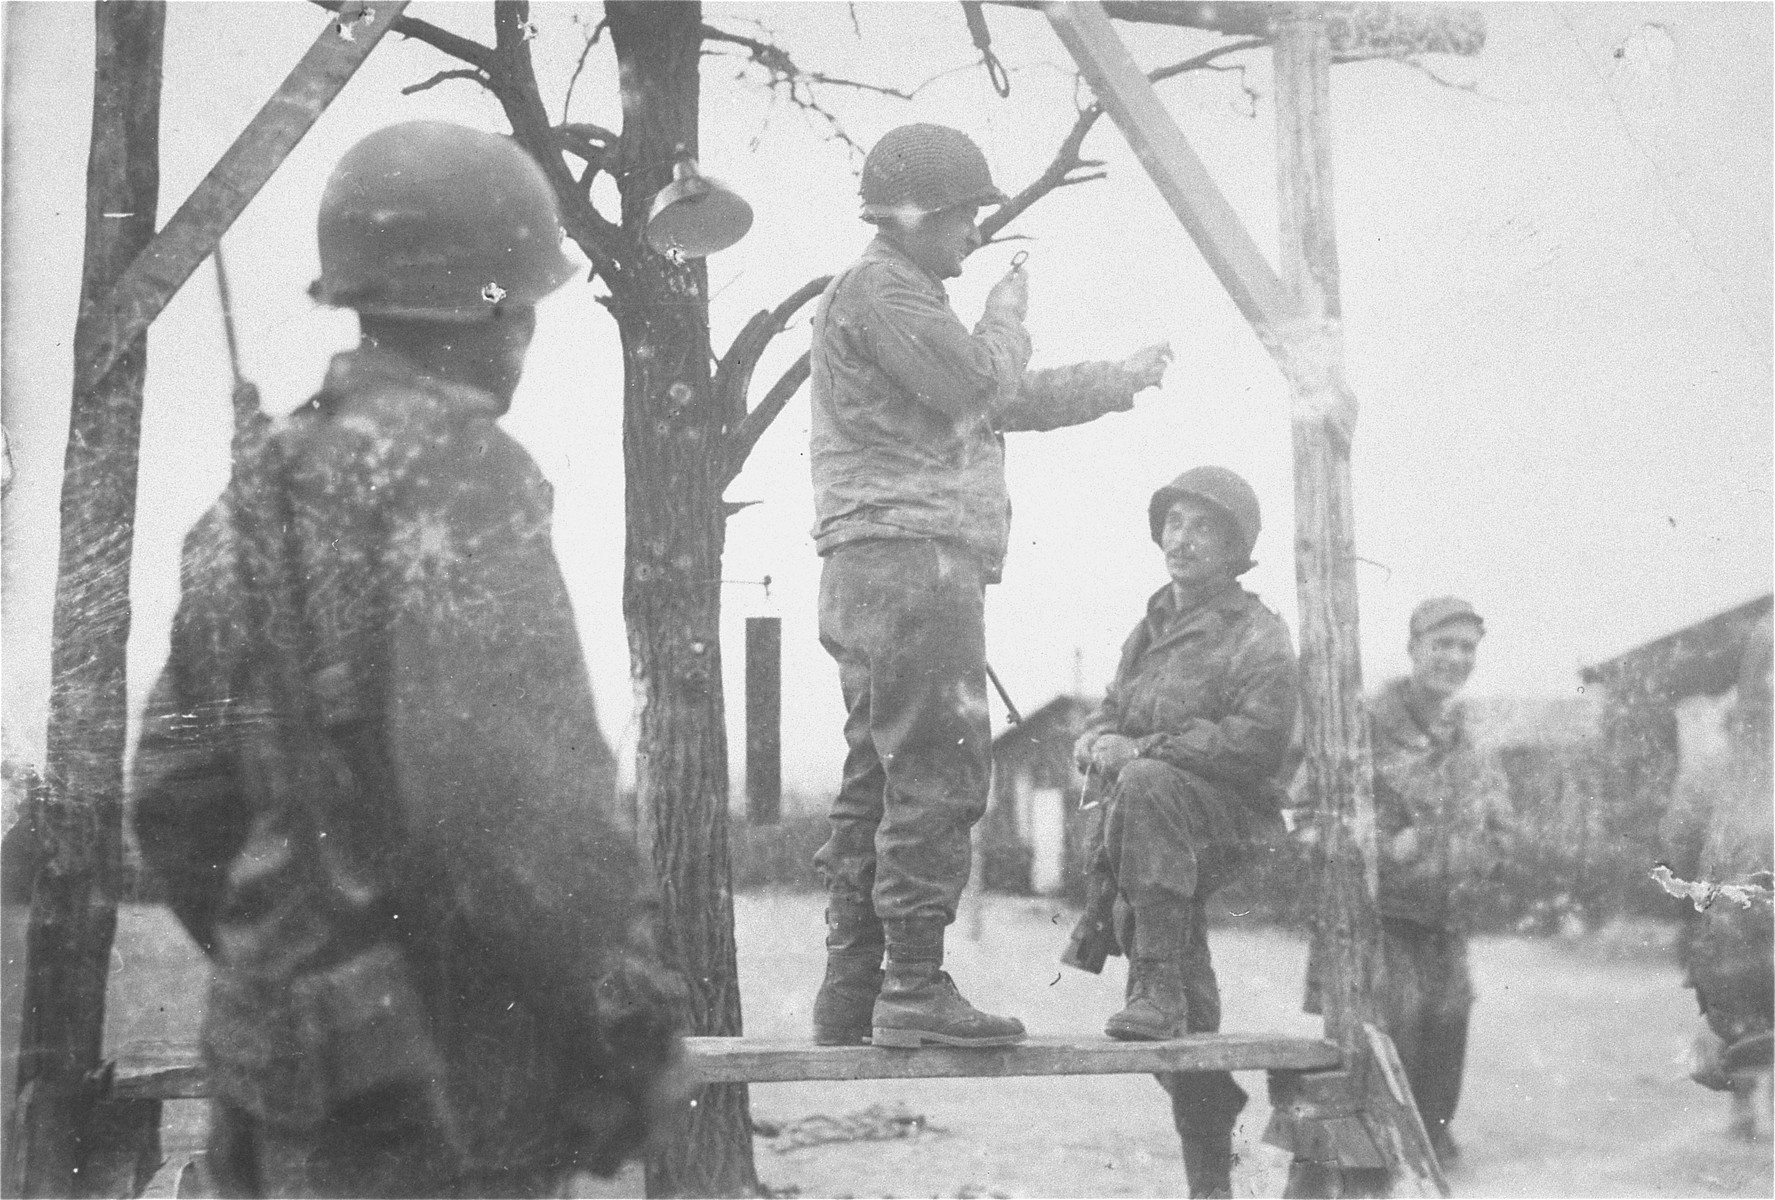 American soldiers examine a gallows on which prisoners were publicly hanged in the Ohrdruf concentration camp.